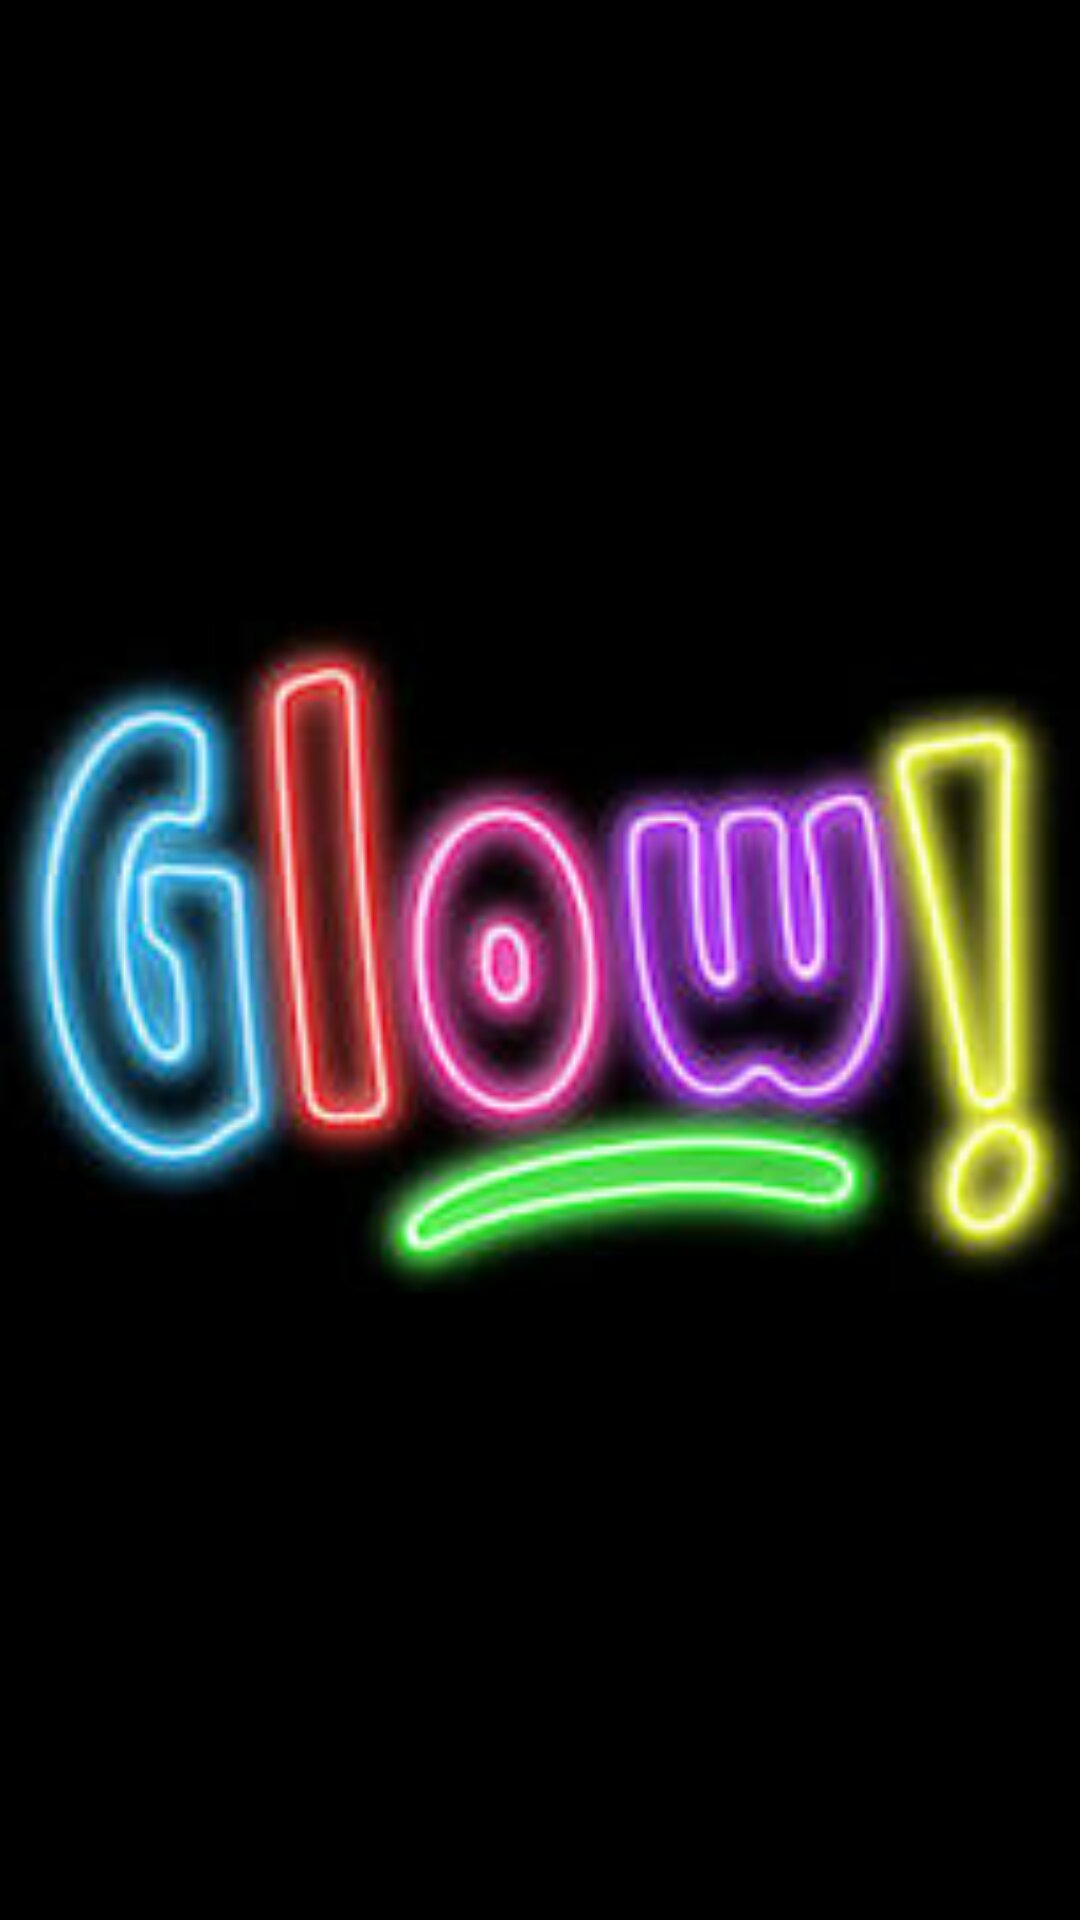 Glow in the dark clipart #11